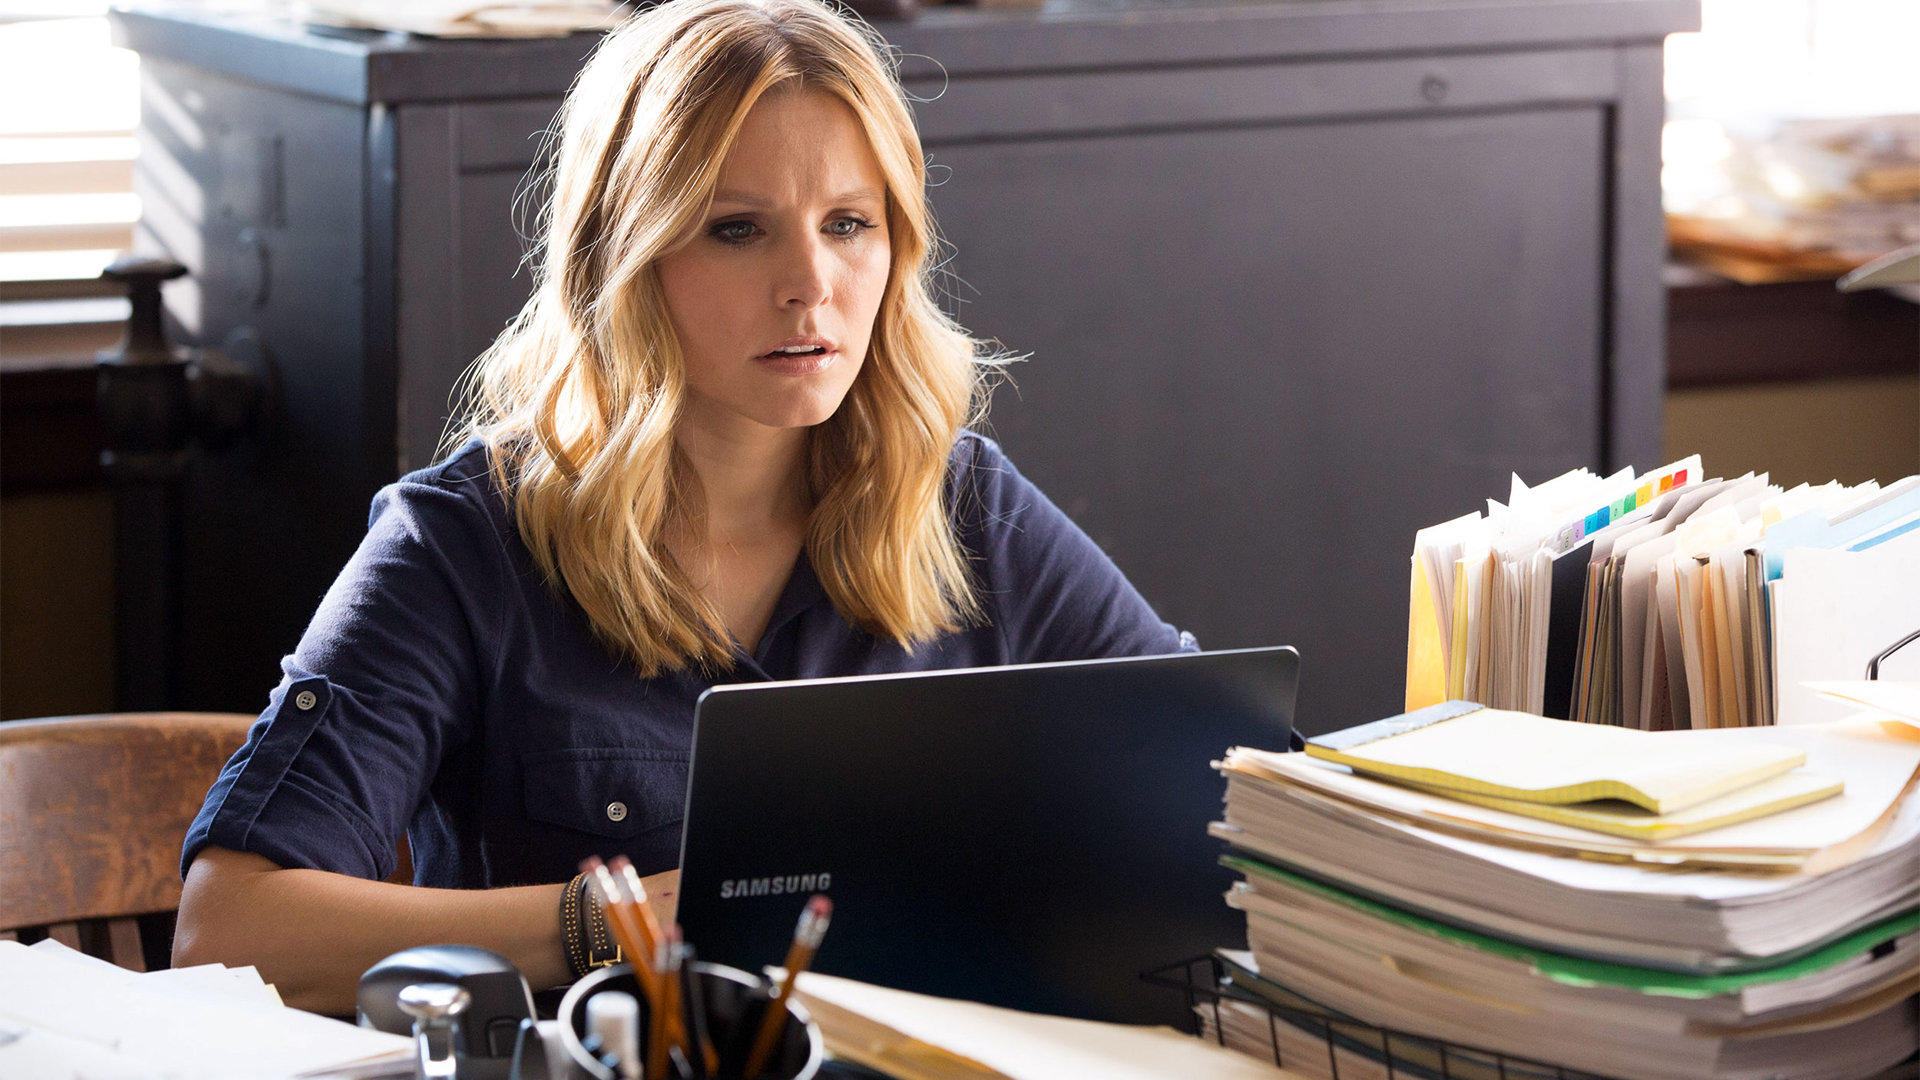 Awesome Veronica Mars free wallpaper ID:103233 for full hd 1920x1080 desktop